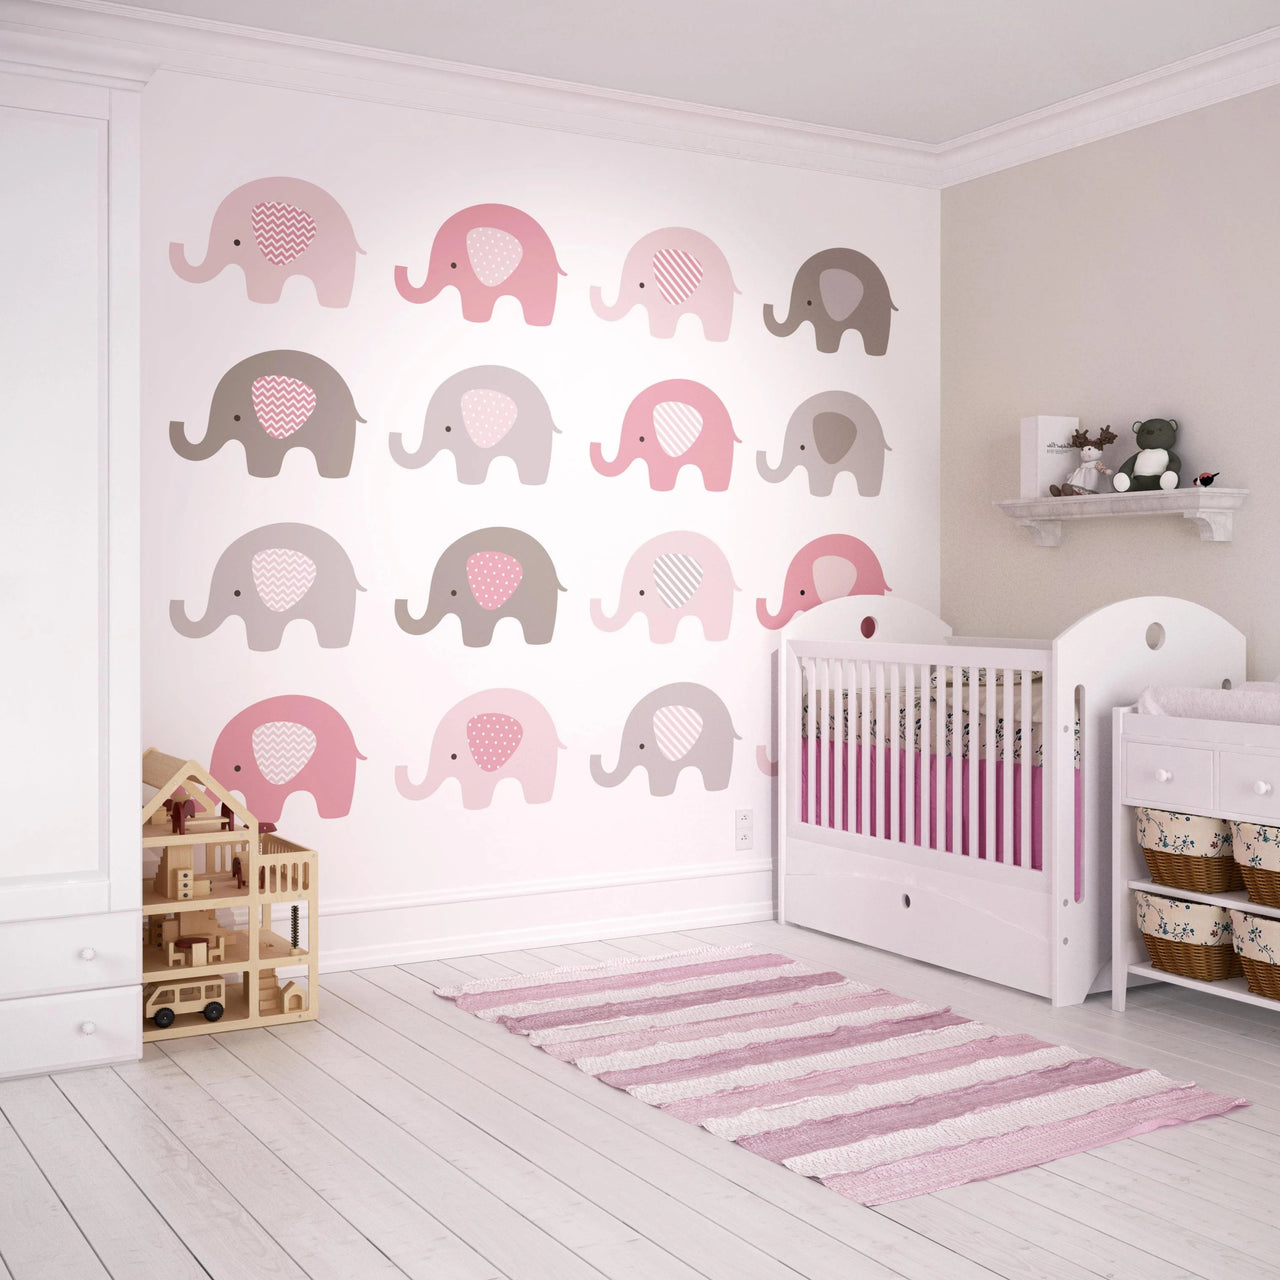 The elephants have come out to play in our Baby Pink Elephant wall mural. A cute cartoon illustration perfect for creating a charming feature wall in a nursery or playroom. Its colour palette of baby pinks and greys will create an adorably stylish space for little ones to grow and learn.